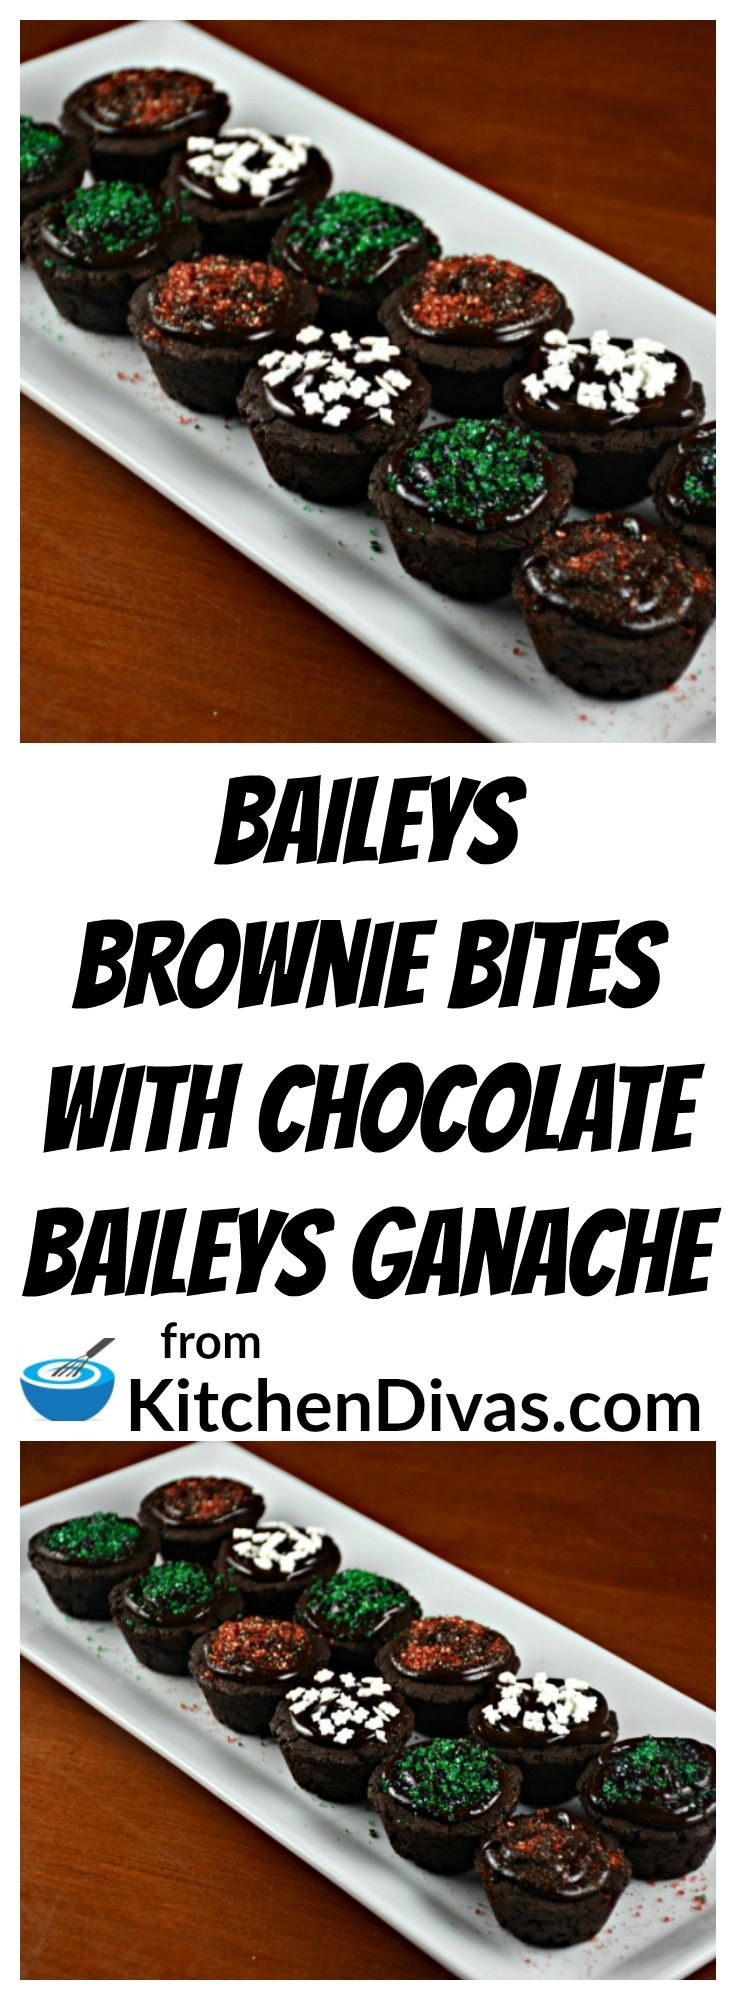 These Baileys Brownie Bites with Chocolate Baileys Ganache are fabulous! Too fabulous actually! A perfect recipe to include for your holiday celebrations!